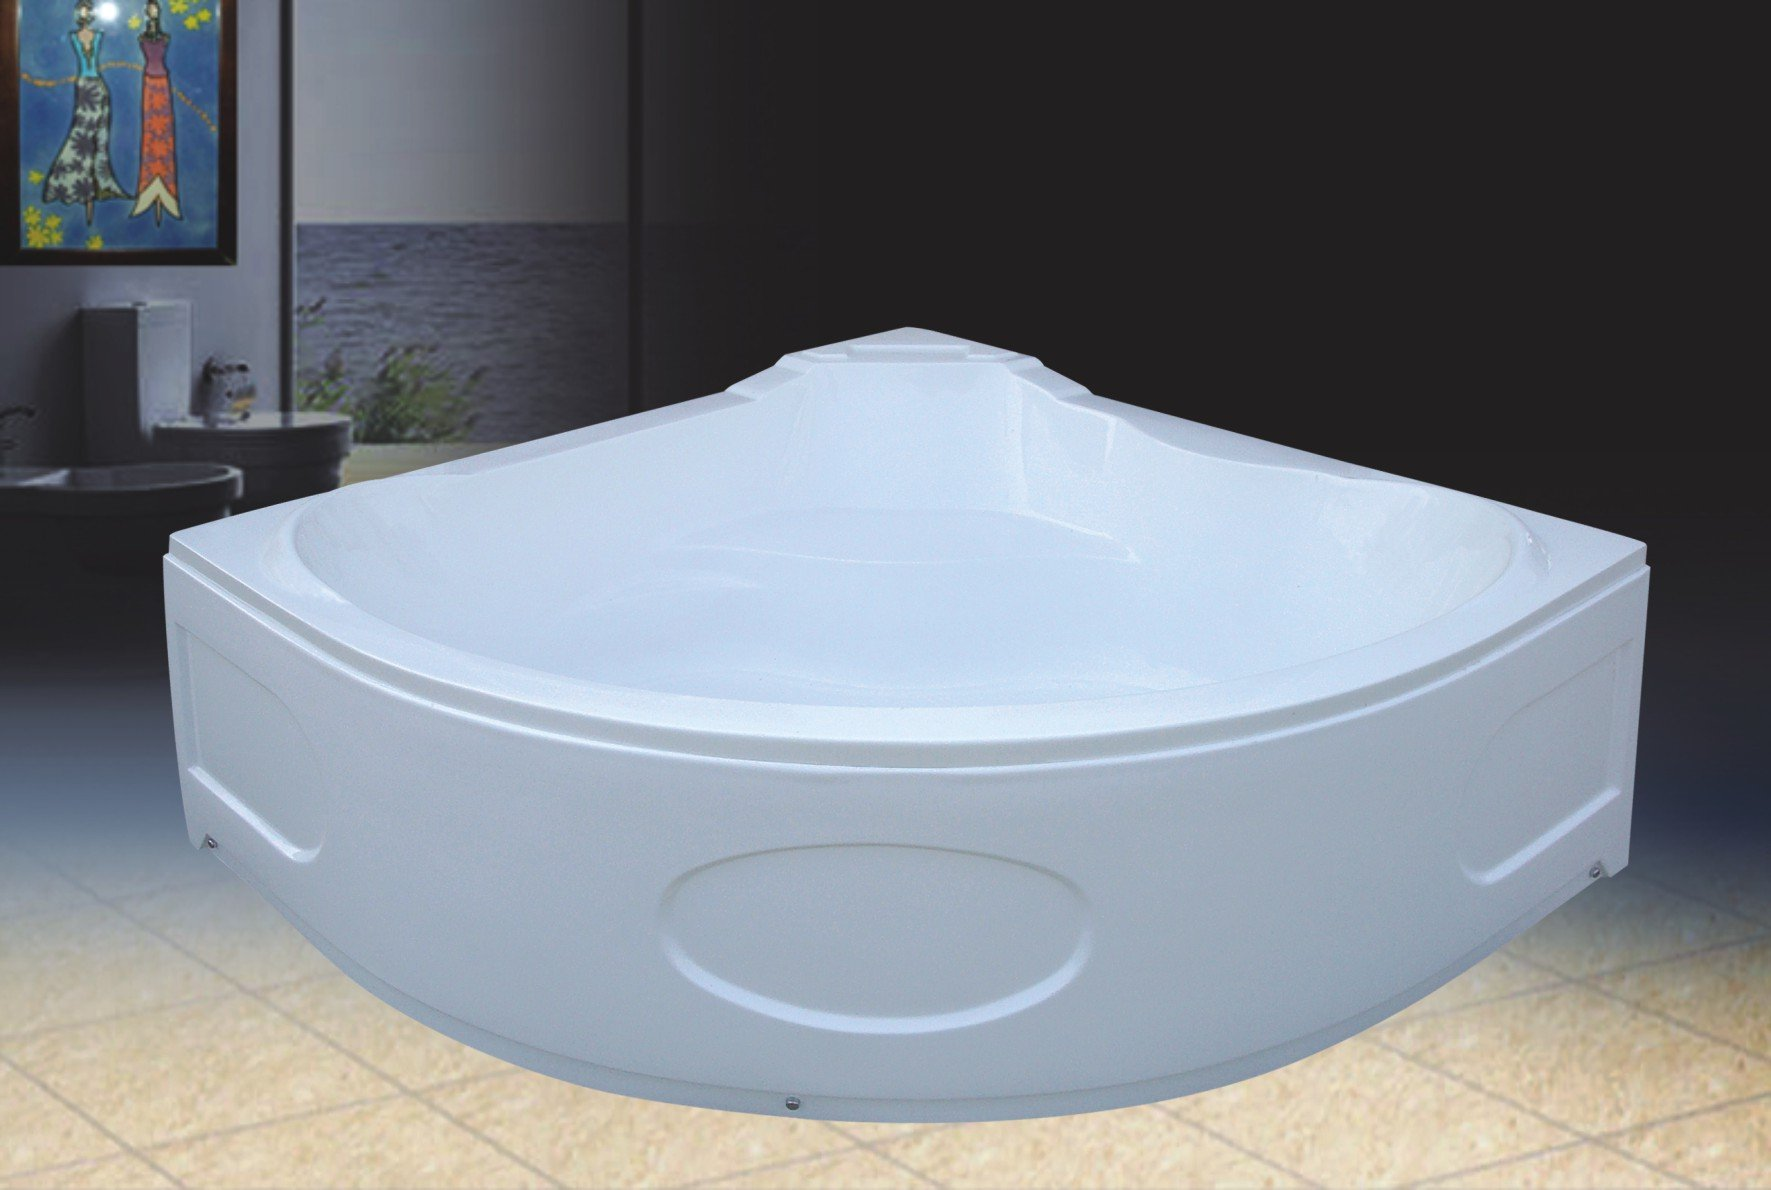 Bath Board Folding Bathtub, Bath Board Folding Bathtub Suppliers and ...